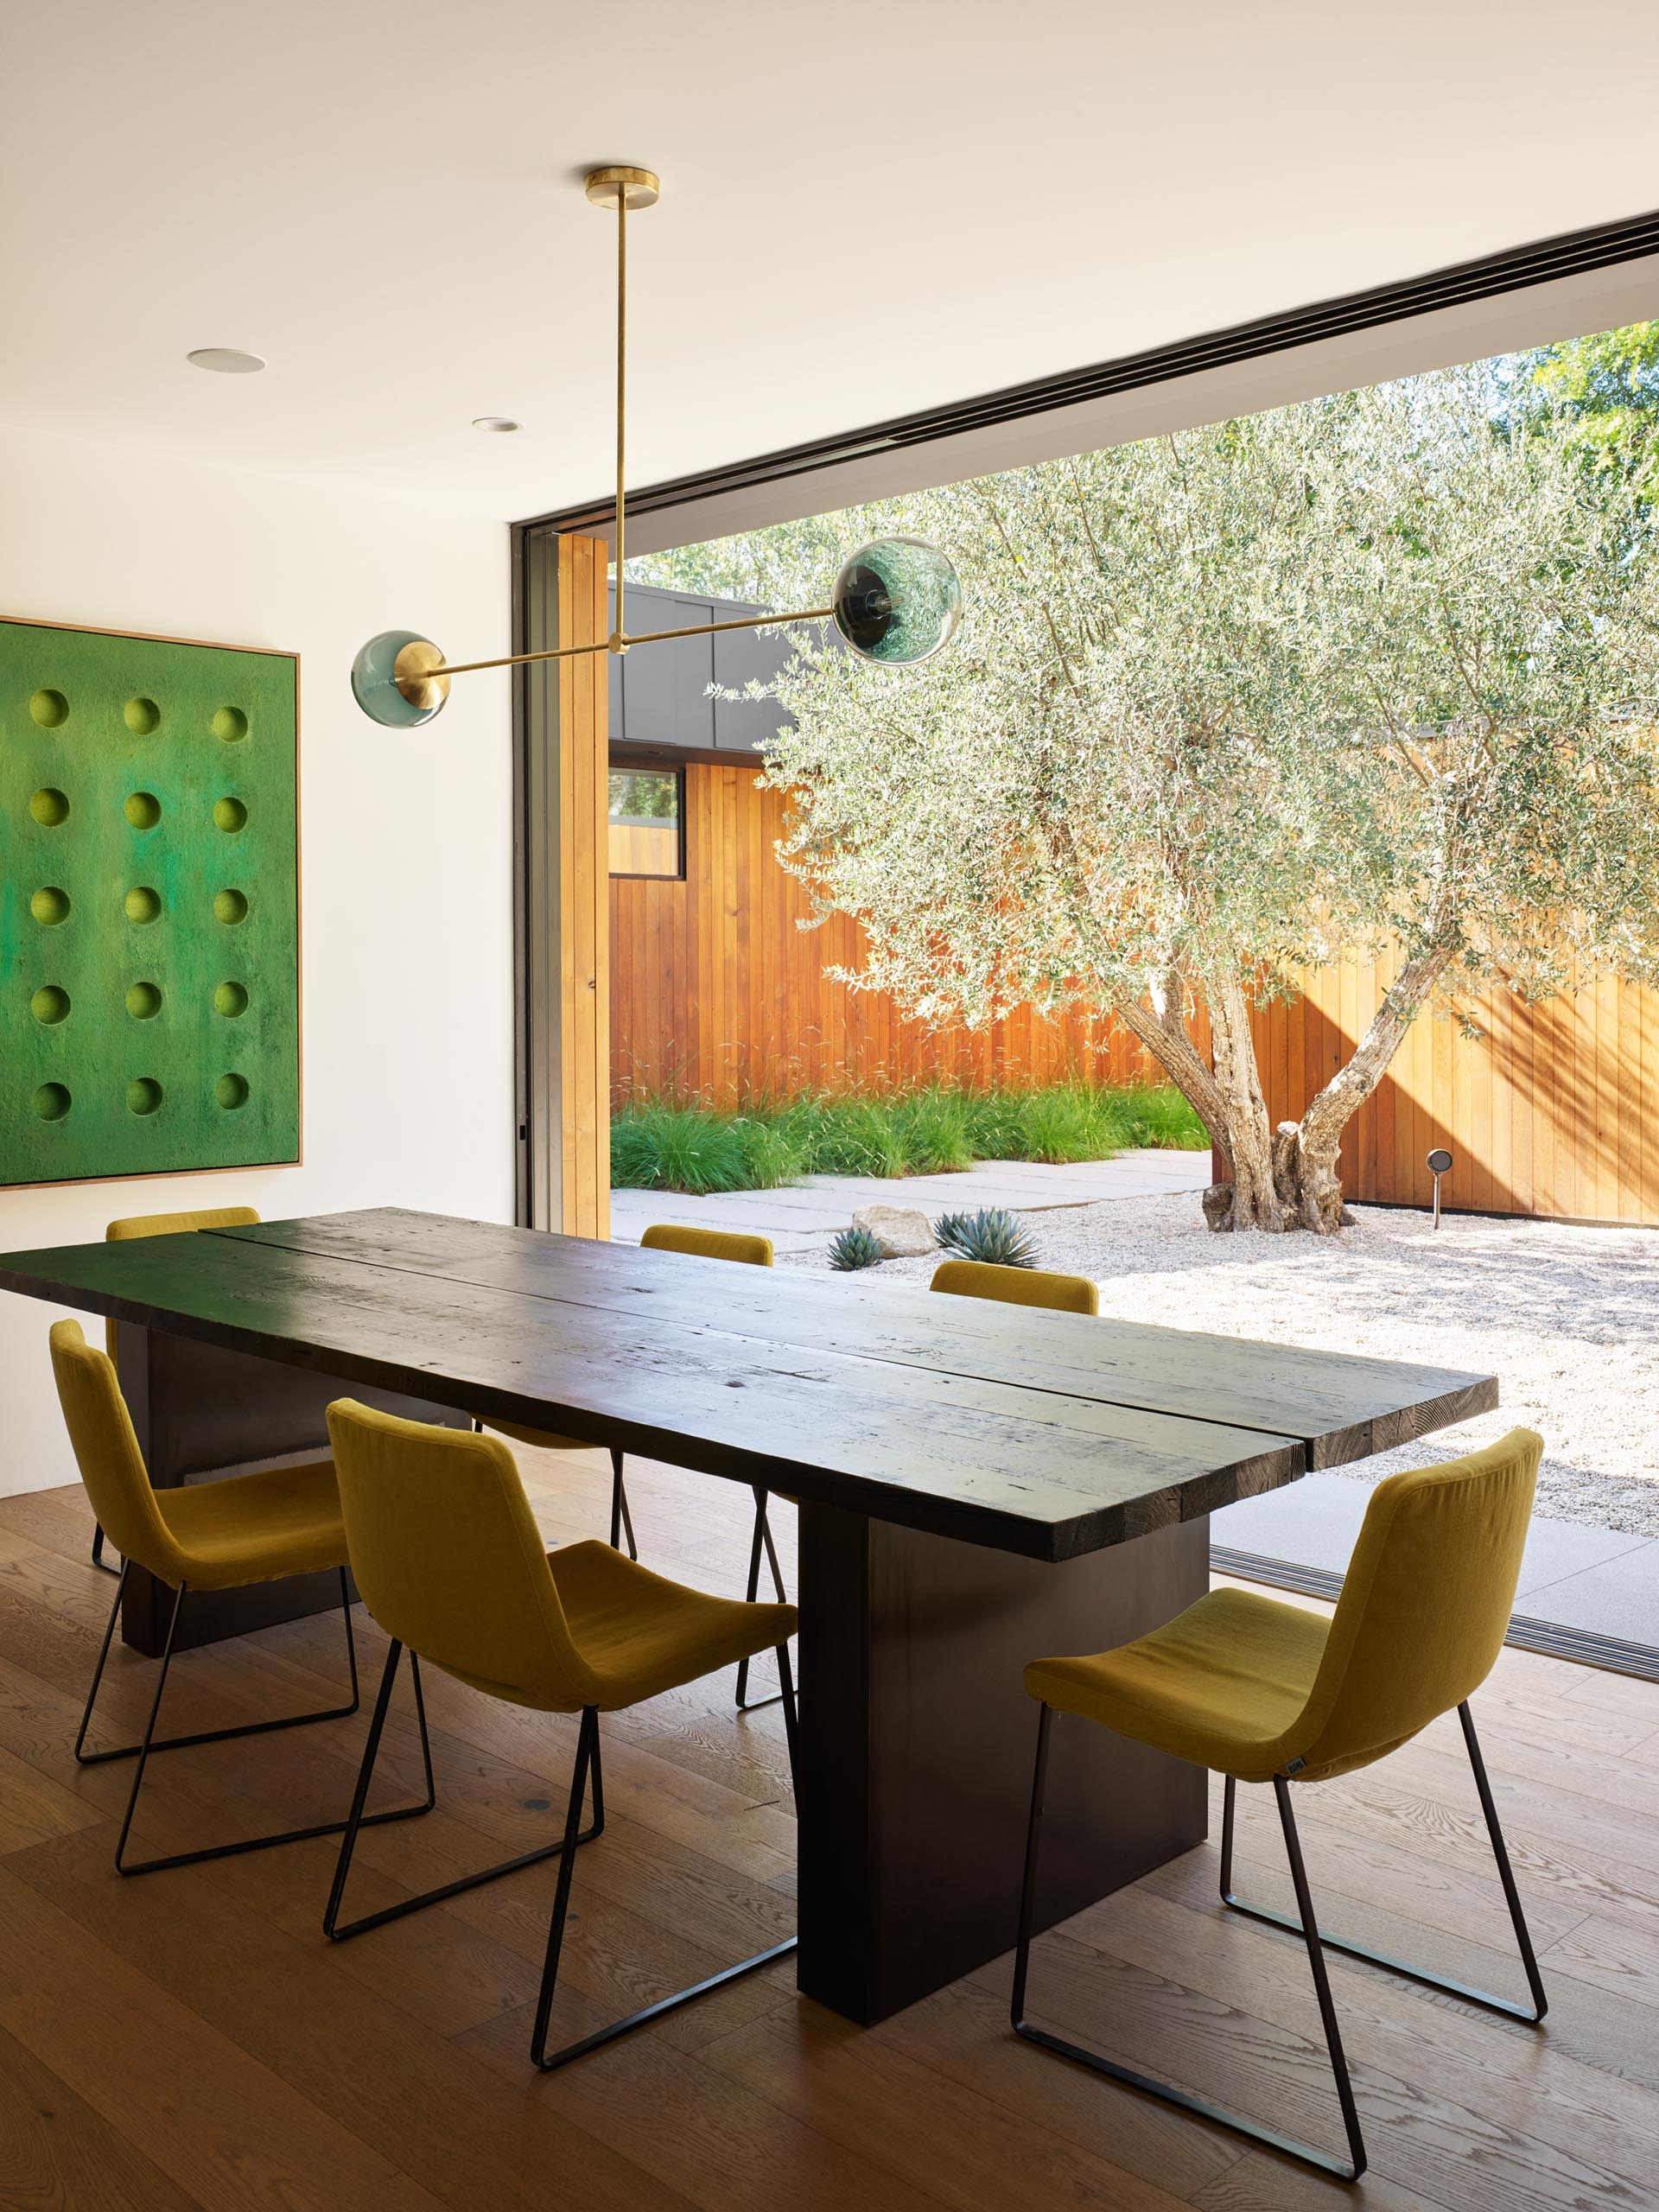 A modern dining room with a wood table, upholstered chairs, and sliding doors that open to a courtyar.